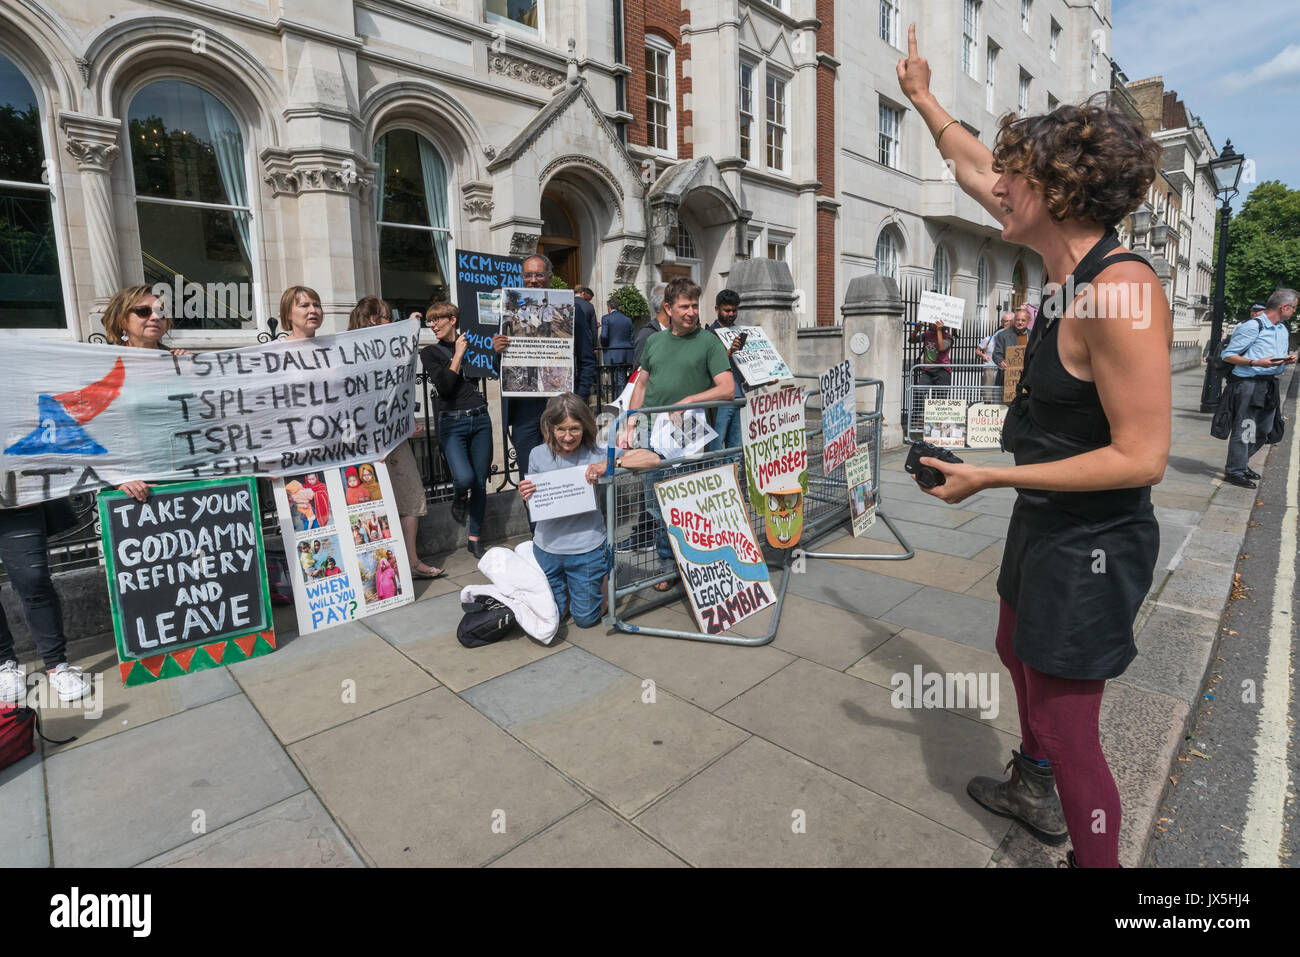 London, UK. 14th Aug, 2017. London, UK. 14th August 2017. Grass roots campaign Foil Vedanta hold a noisy protest outside the AGM of Vedanta. They accuse Vedanta of illegal mining in Goa, of increasing harassment, torture and false accusations against tribal activists in Nyamgiri, Odisha, who have used Indian laws to stop bauxite mining of their sacred mountain, eleven years of ruinous and continuing pollution by Konkola Copper Mines (KCM) in Zambia, where they say the company have fraudulently avoided taxes and failed to publish mandatory accounts and other offences. Vedanta is a FTSE 250 - Stock Image